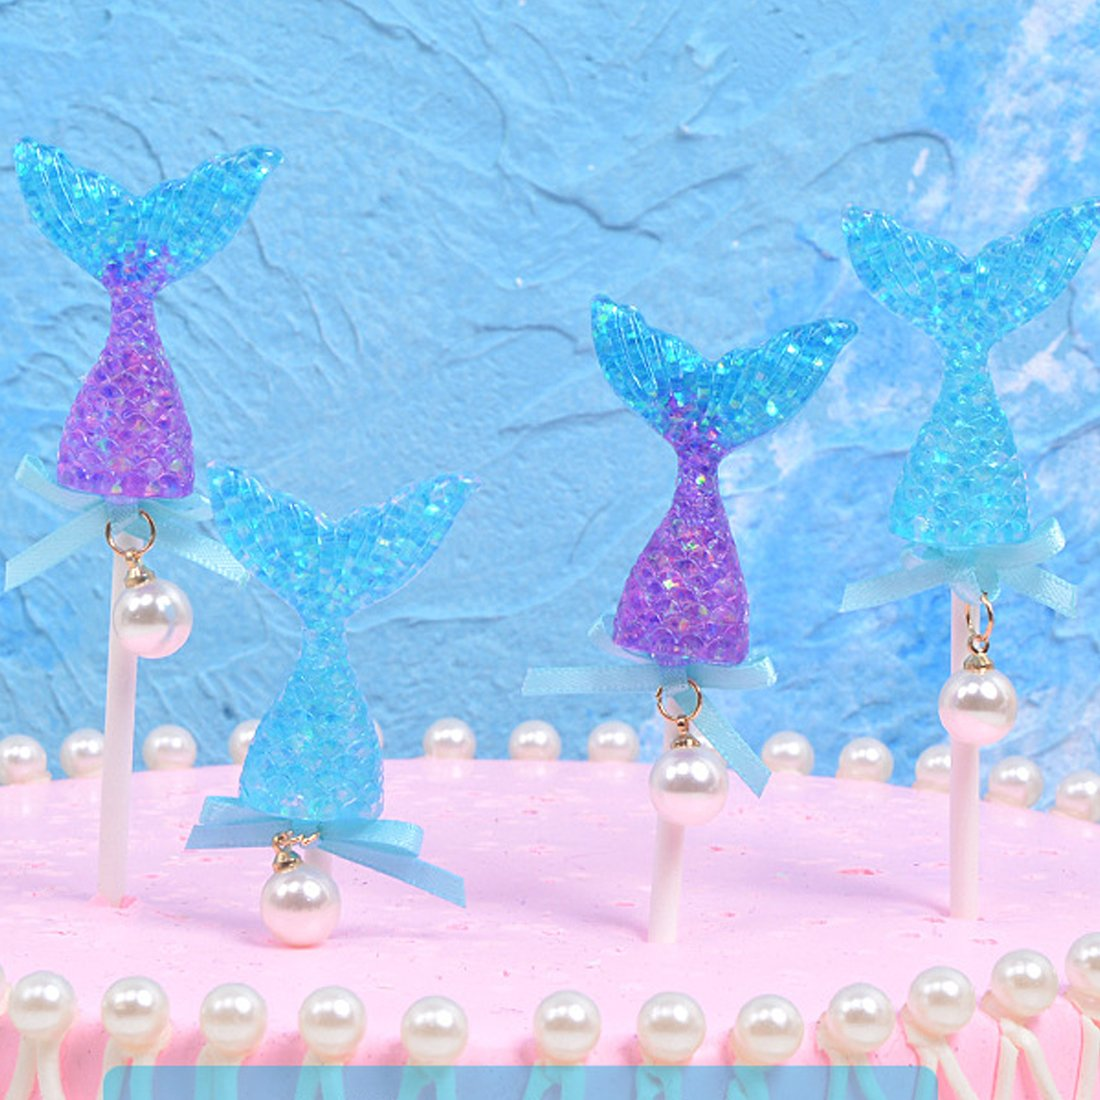 CShopping 10Pack Glitter Colorful Mermaid Tail Cake Topper, Reusable Sequin Mermaid Cake Decoration for Birthday Party, Sea Theme Party, Baby Shower and Wedding by CShopping (Image #3)